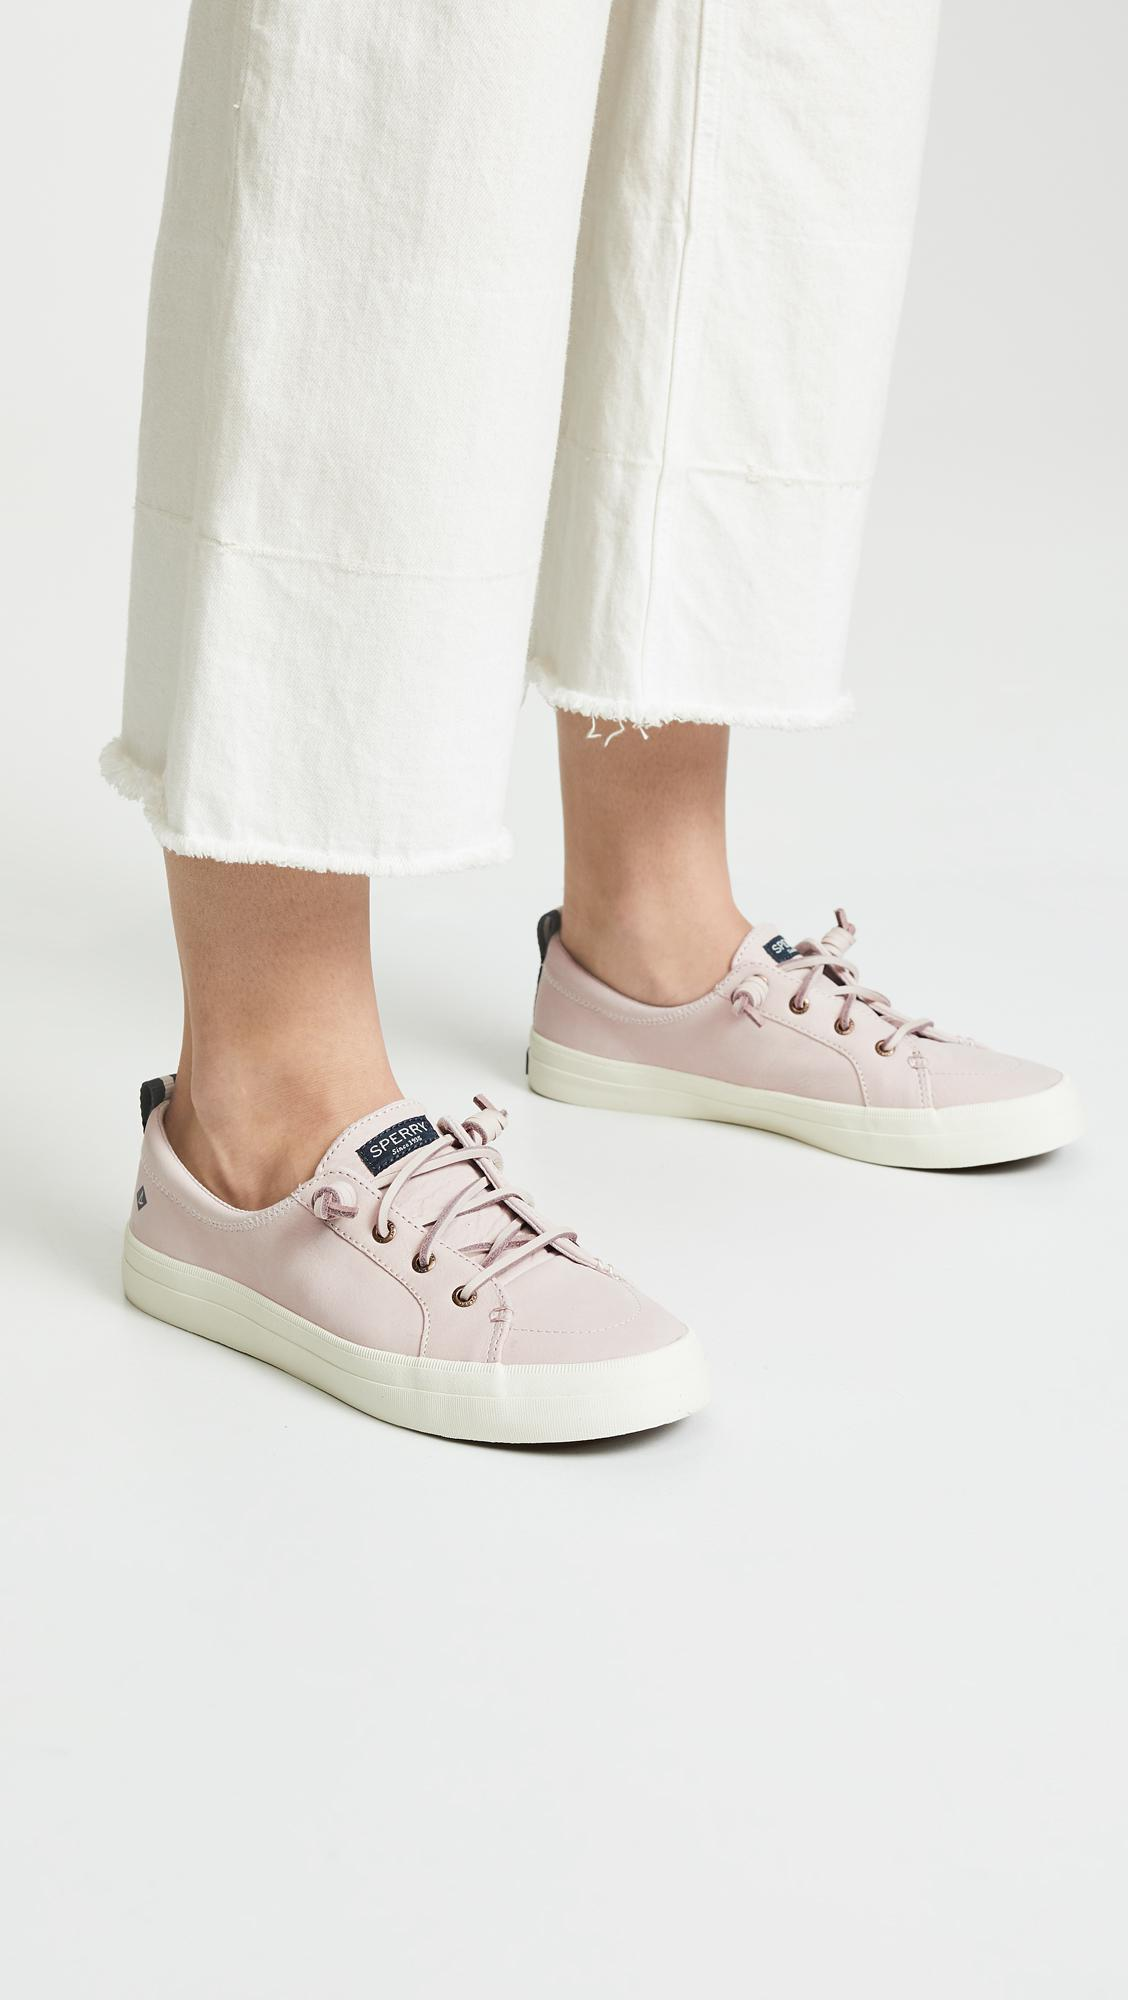 53c715a034b12 Women's Crest Vibe Washable Leather Sneakers